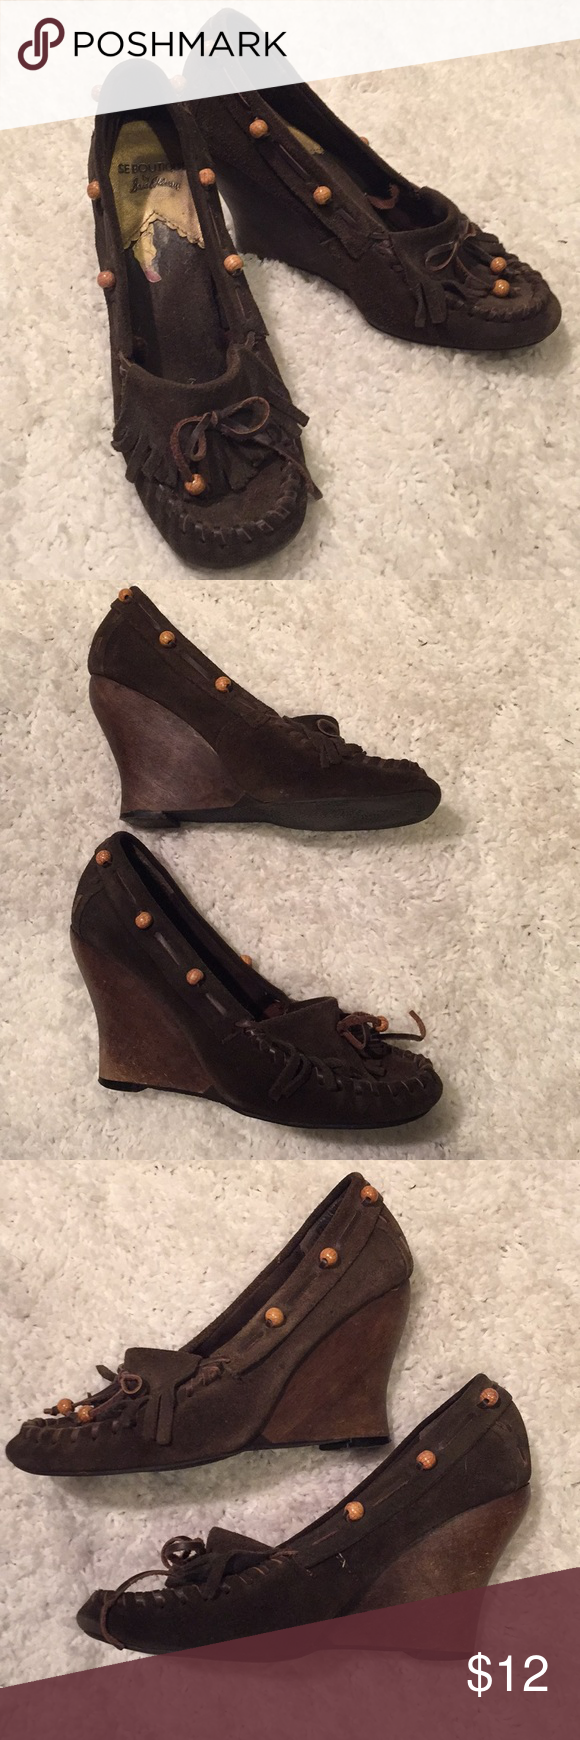 86d983a0c6535 Size 6 Sam Edelman brown leather wedge moccasins These have been worn. See  pictures for